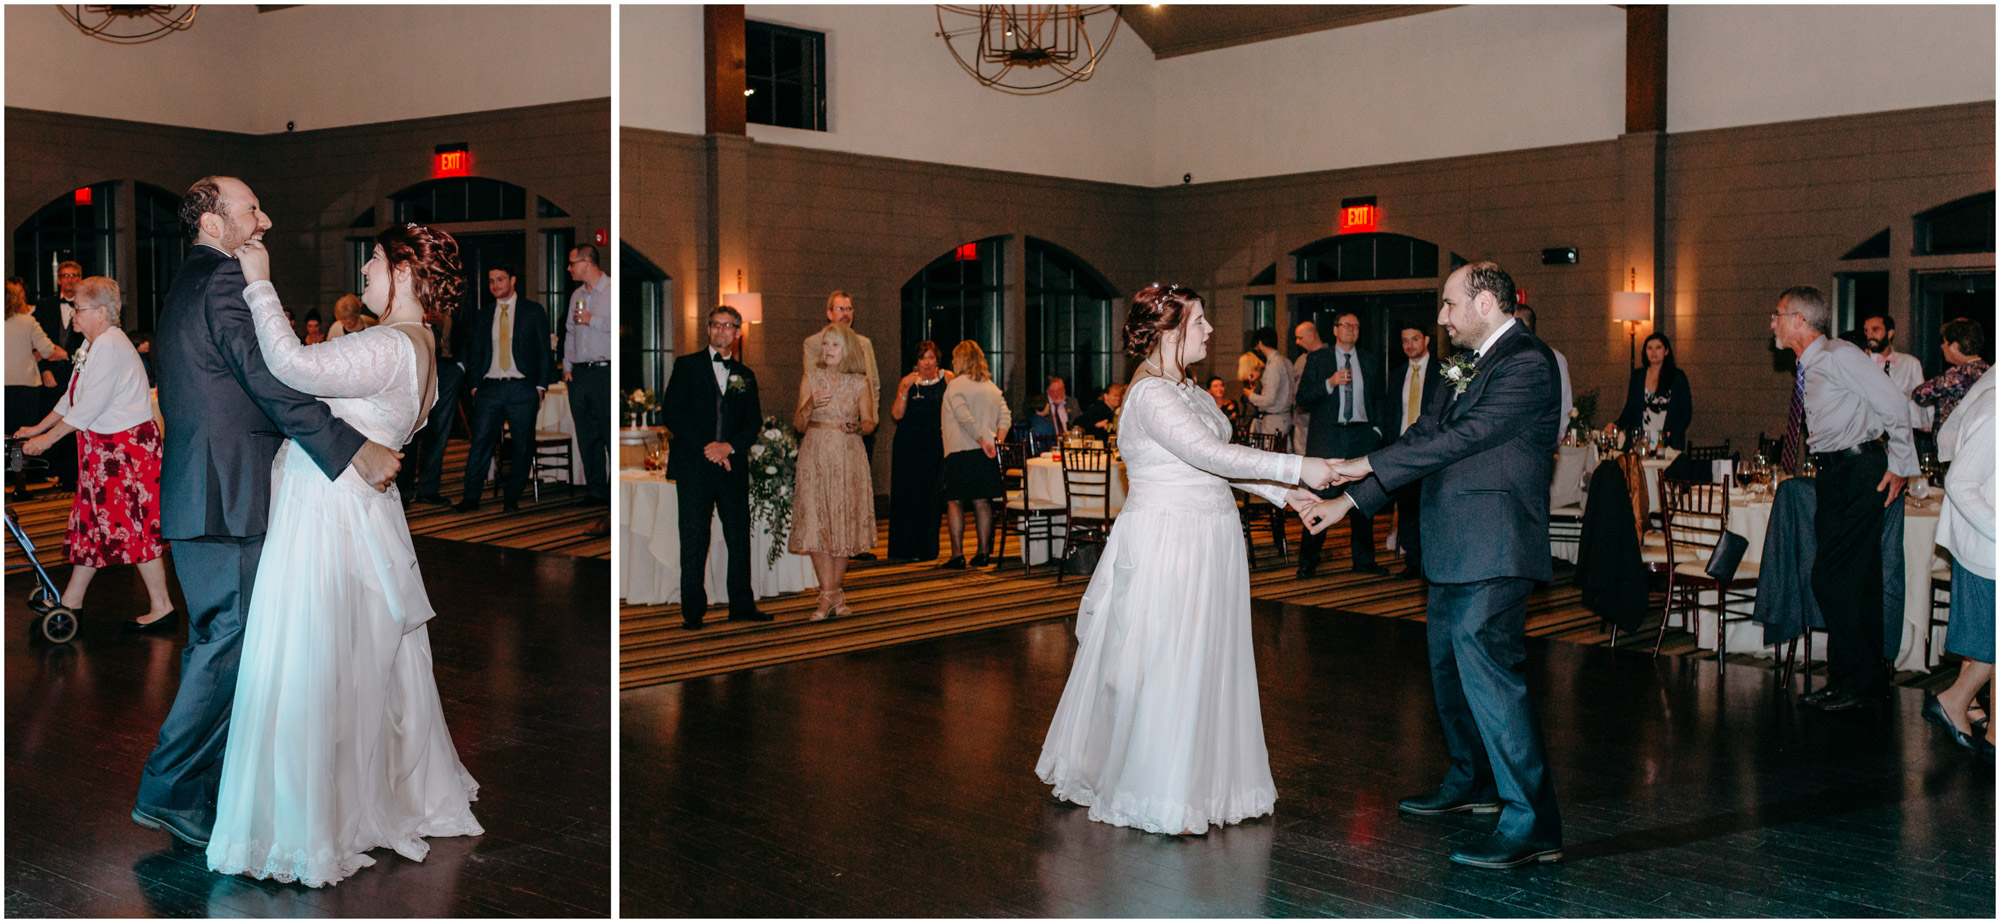 Bride and groom's first dance during reception - by Ashleigh Laureen Photography at LaBelle Winery in Amherst, New Hampshire